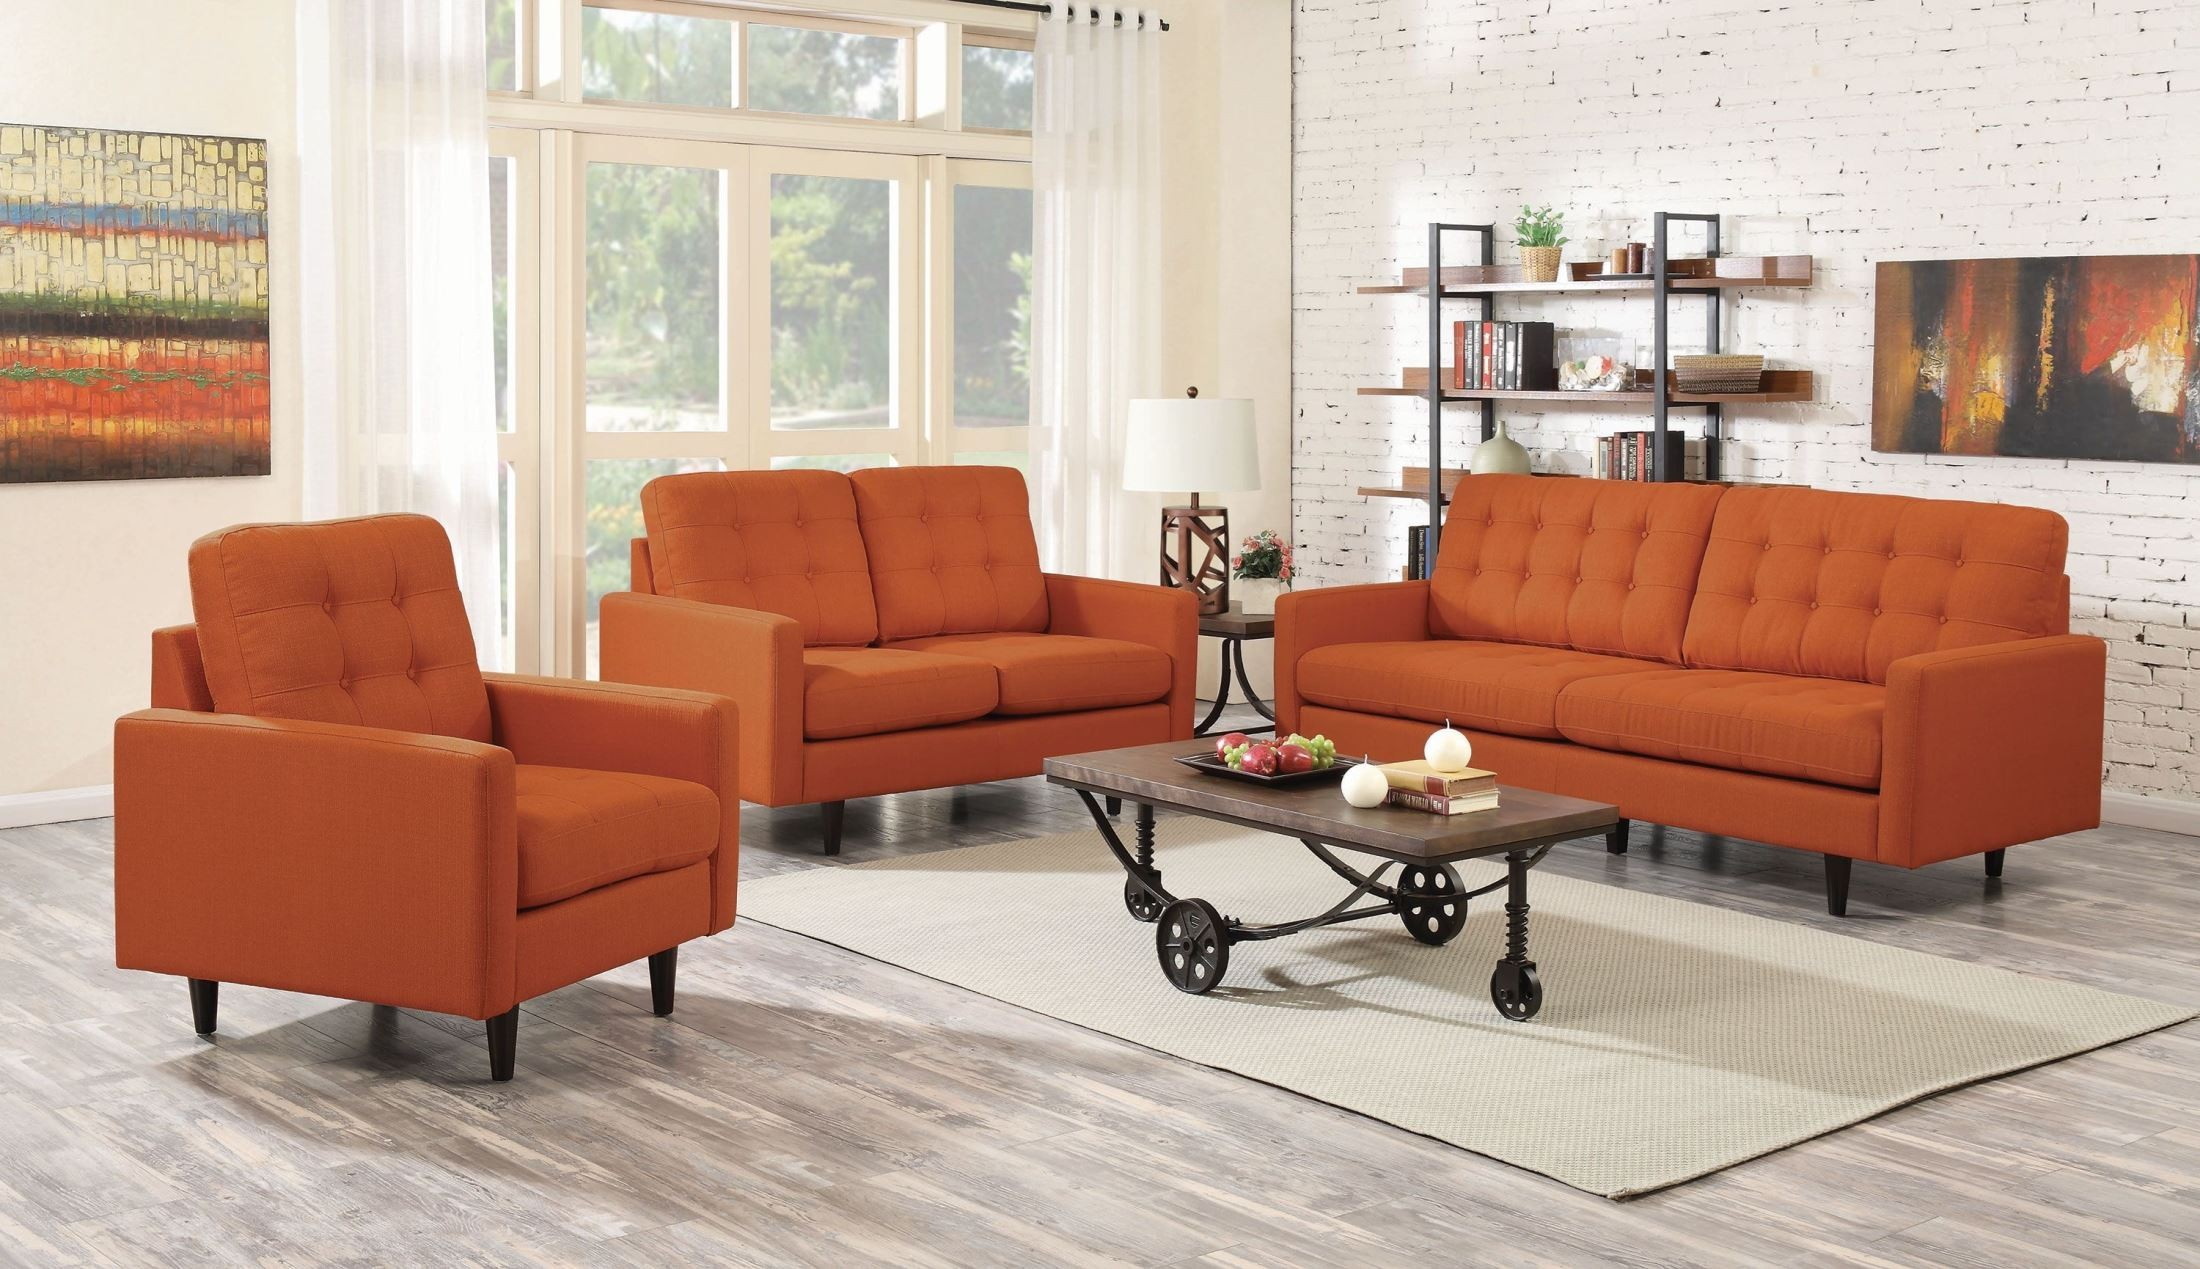 kesson orange living room set 505371 coaster furniture. Black Bedroom Furniture Sets. Home Design Ideas